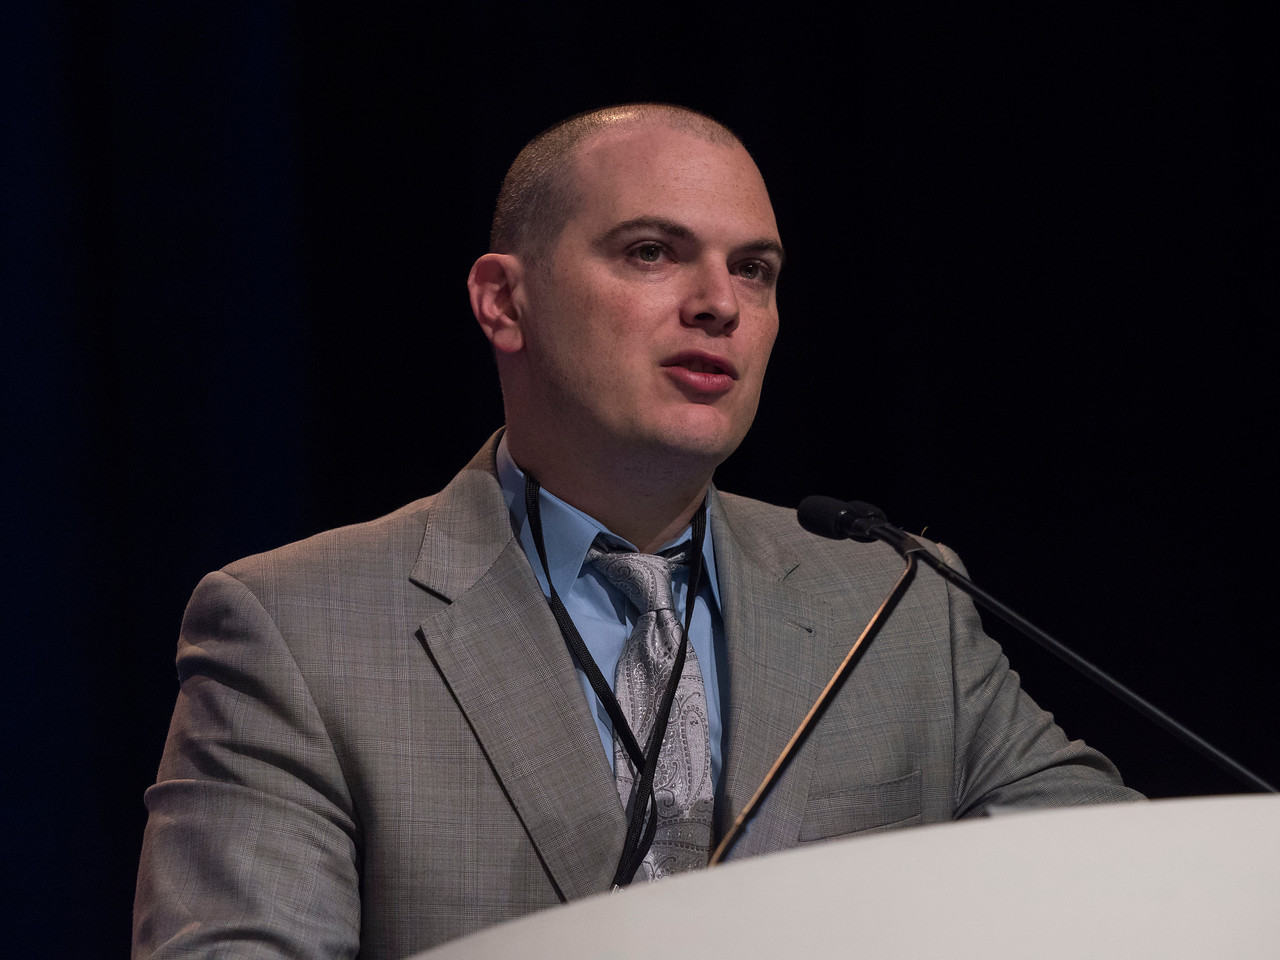 Brian M. Shuch, MD speaks - Best of Journals: Renal Cell Cancer